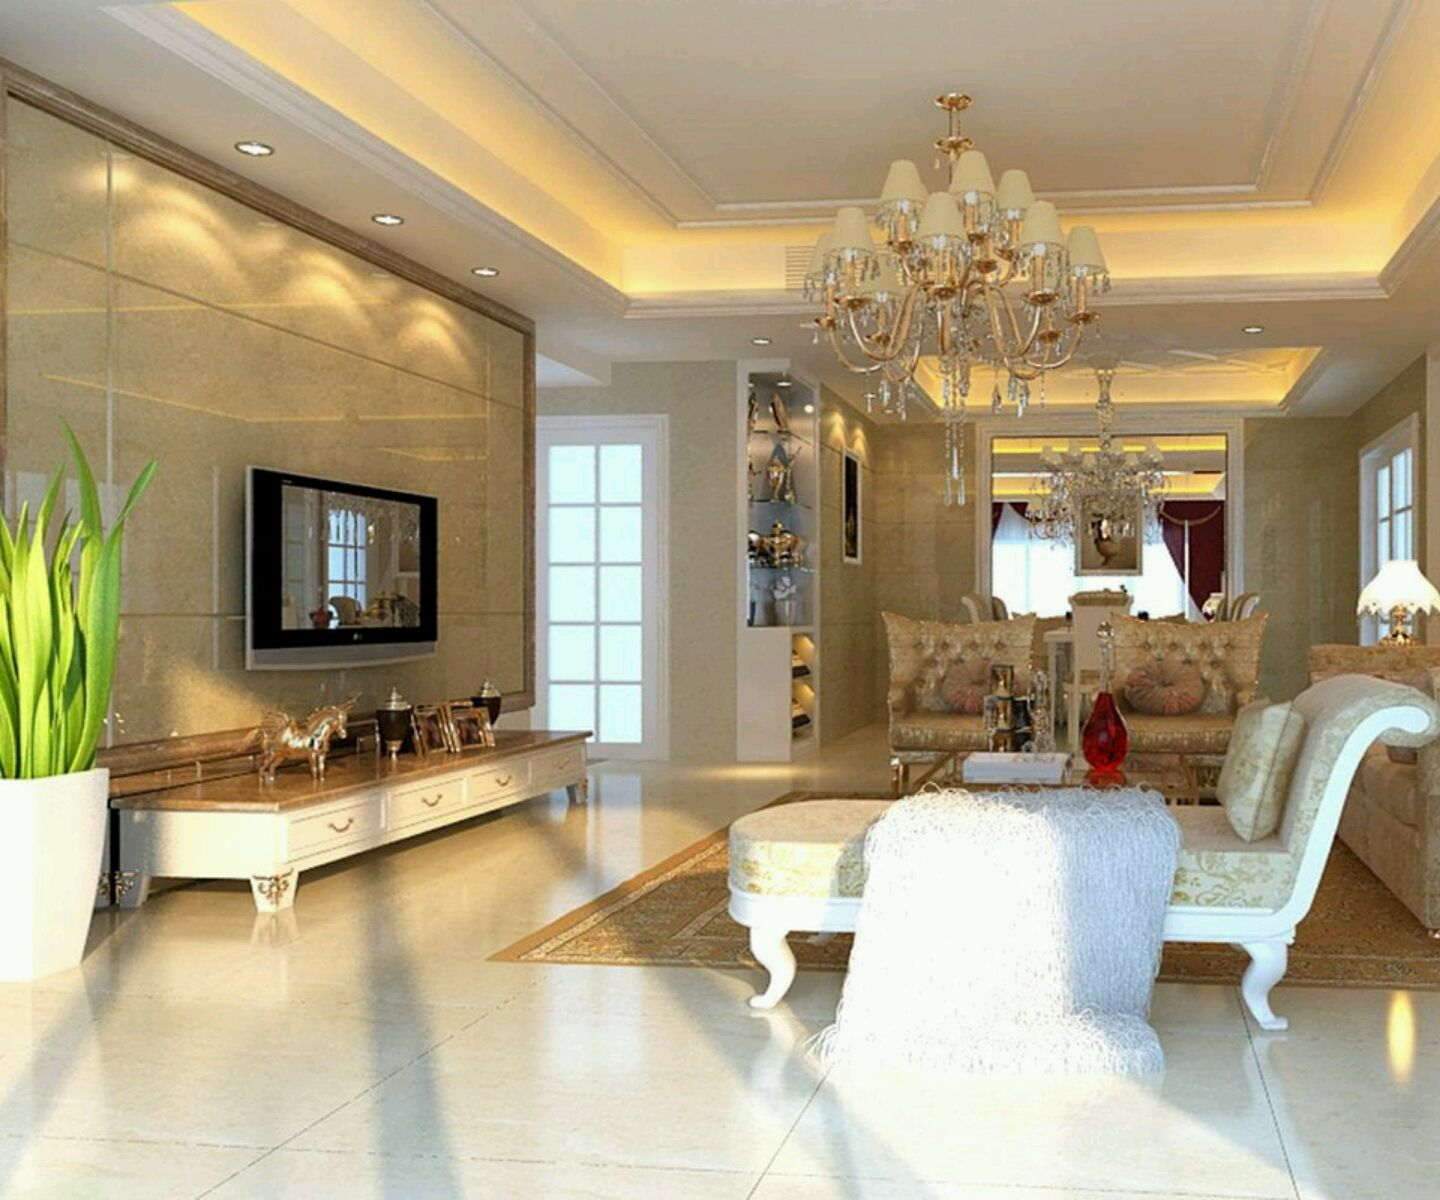 Interior Design Home Decorating Ideas: Luxury Homes Interior Decoration Living Room Designs Ideas